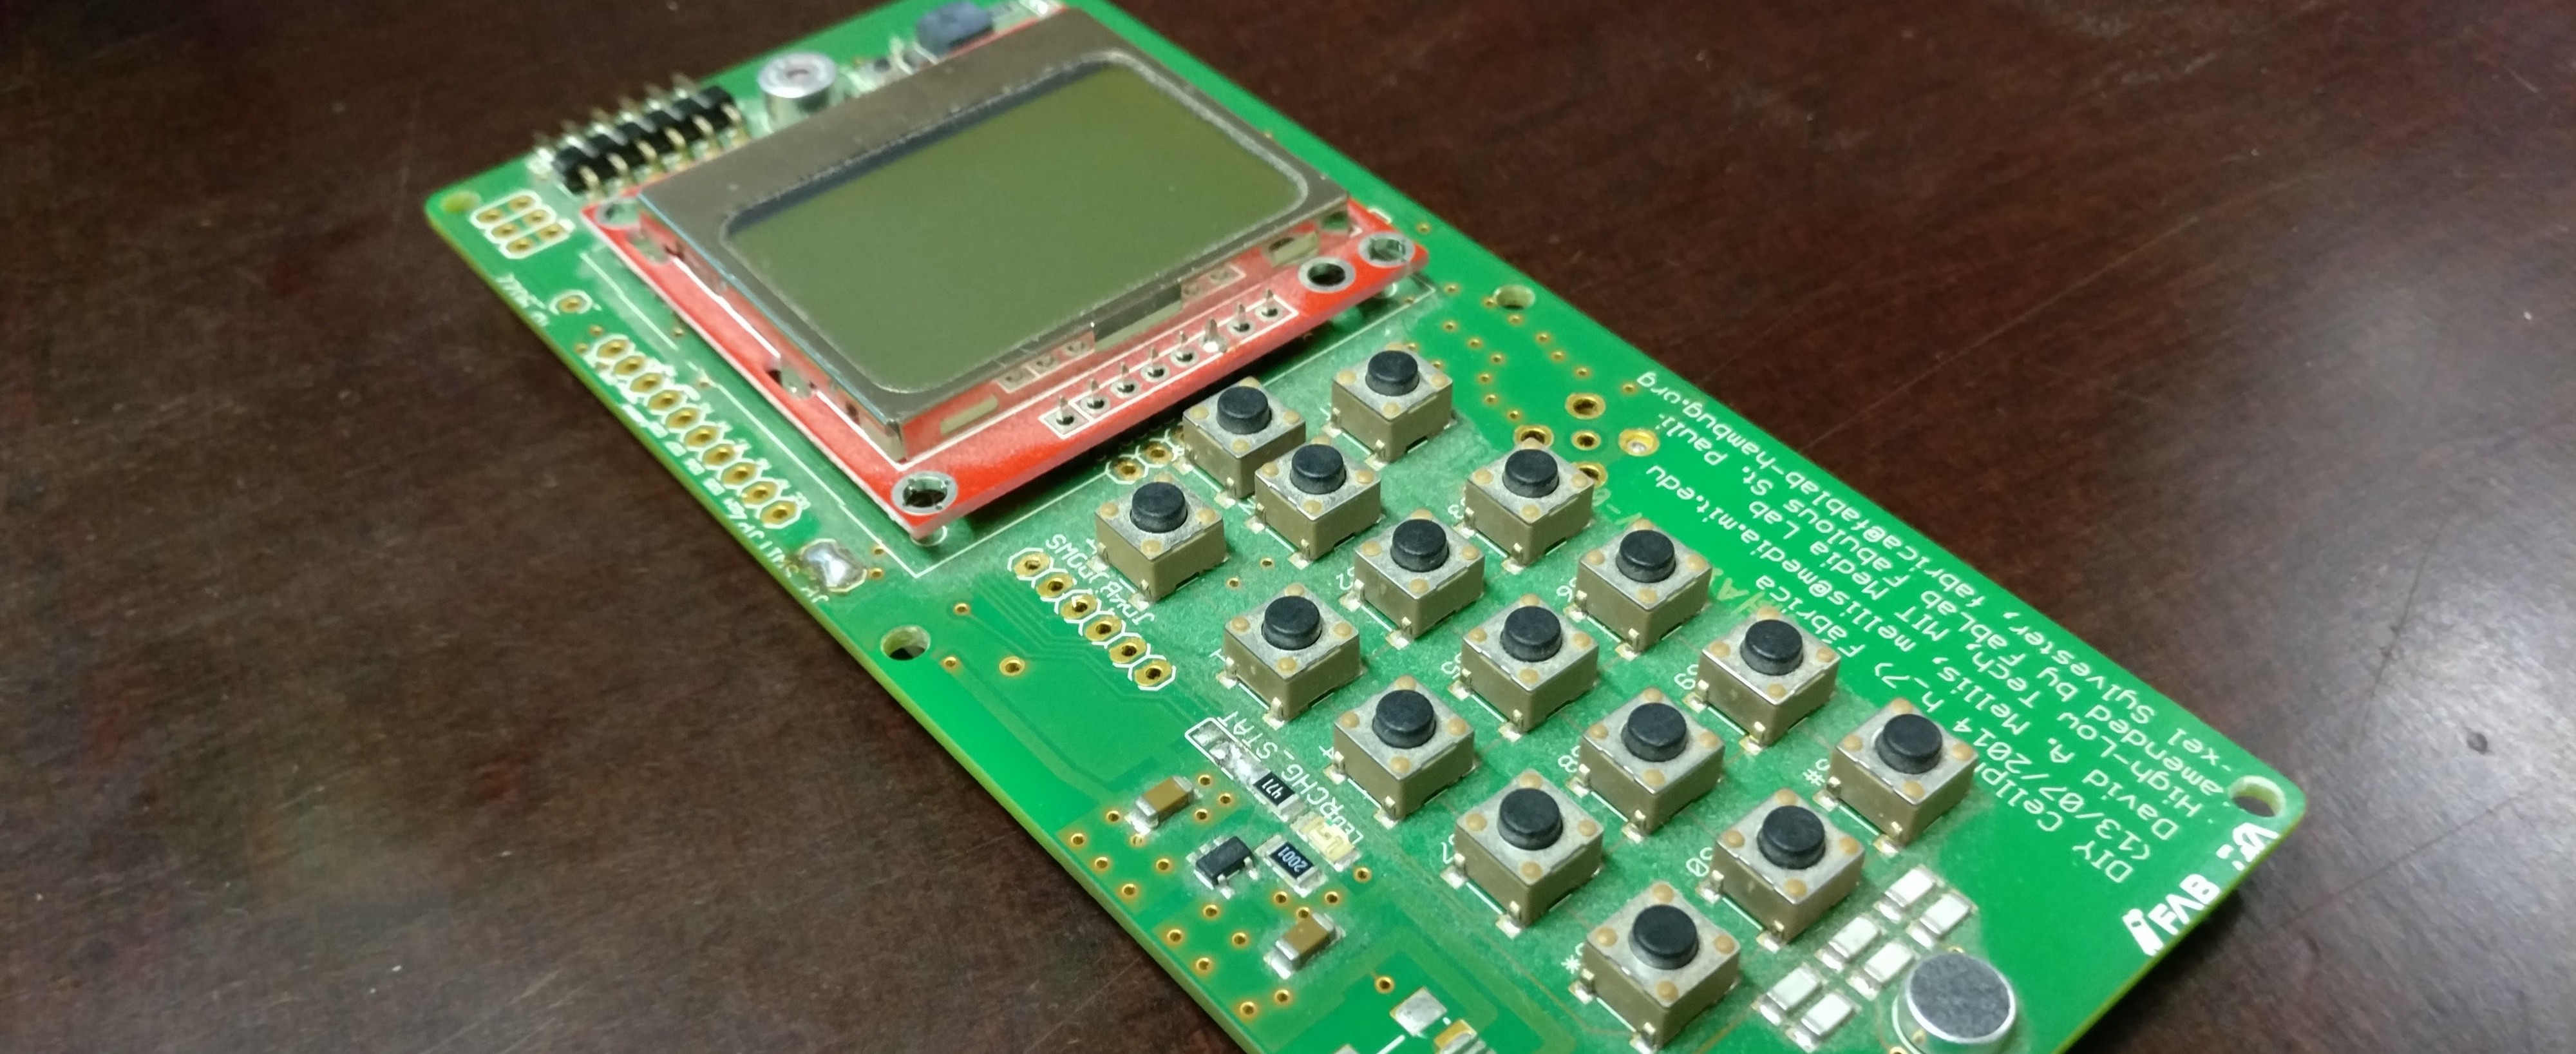 Best Practices For Documenting Electronics Projects For The